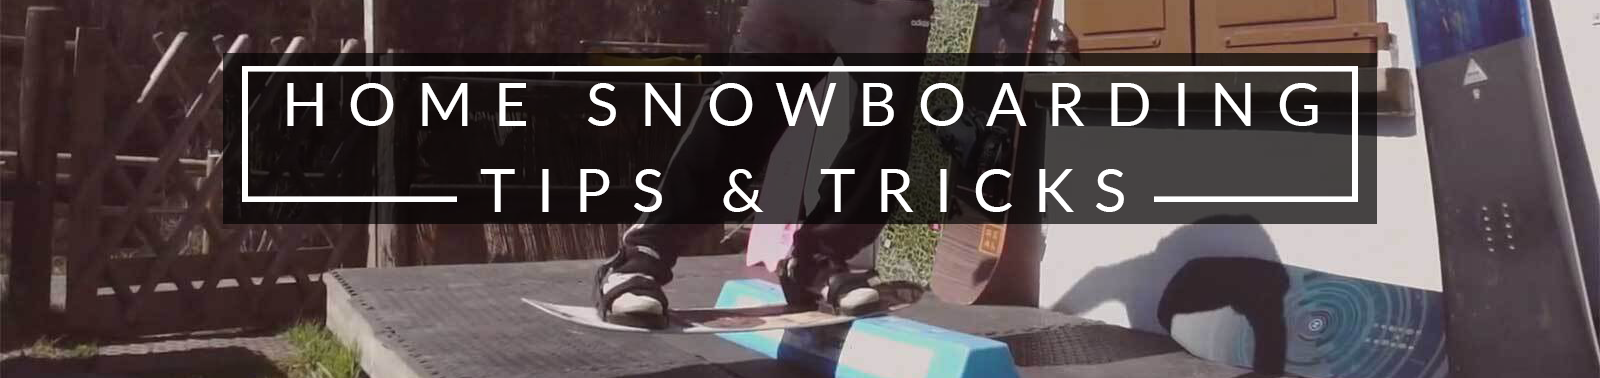 Home Snowboarding Tips & Tricks